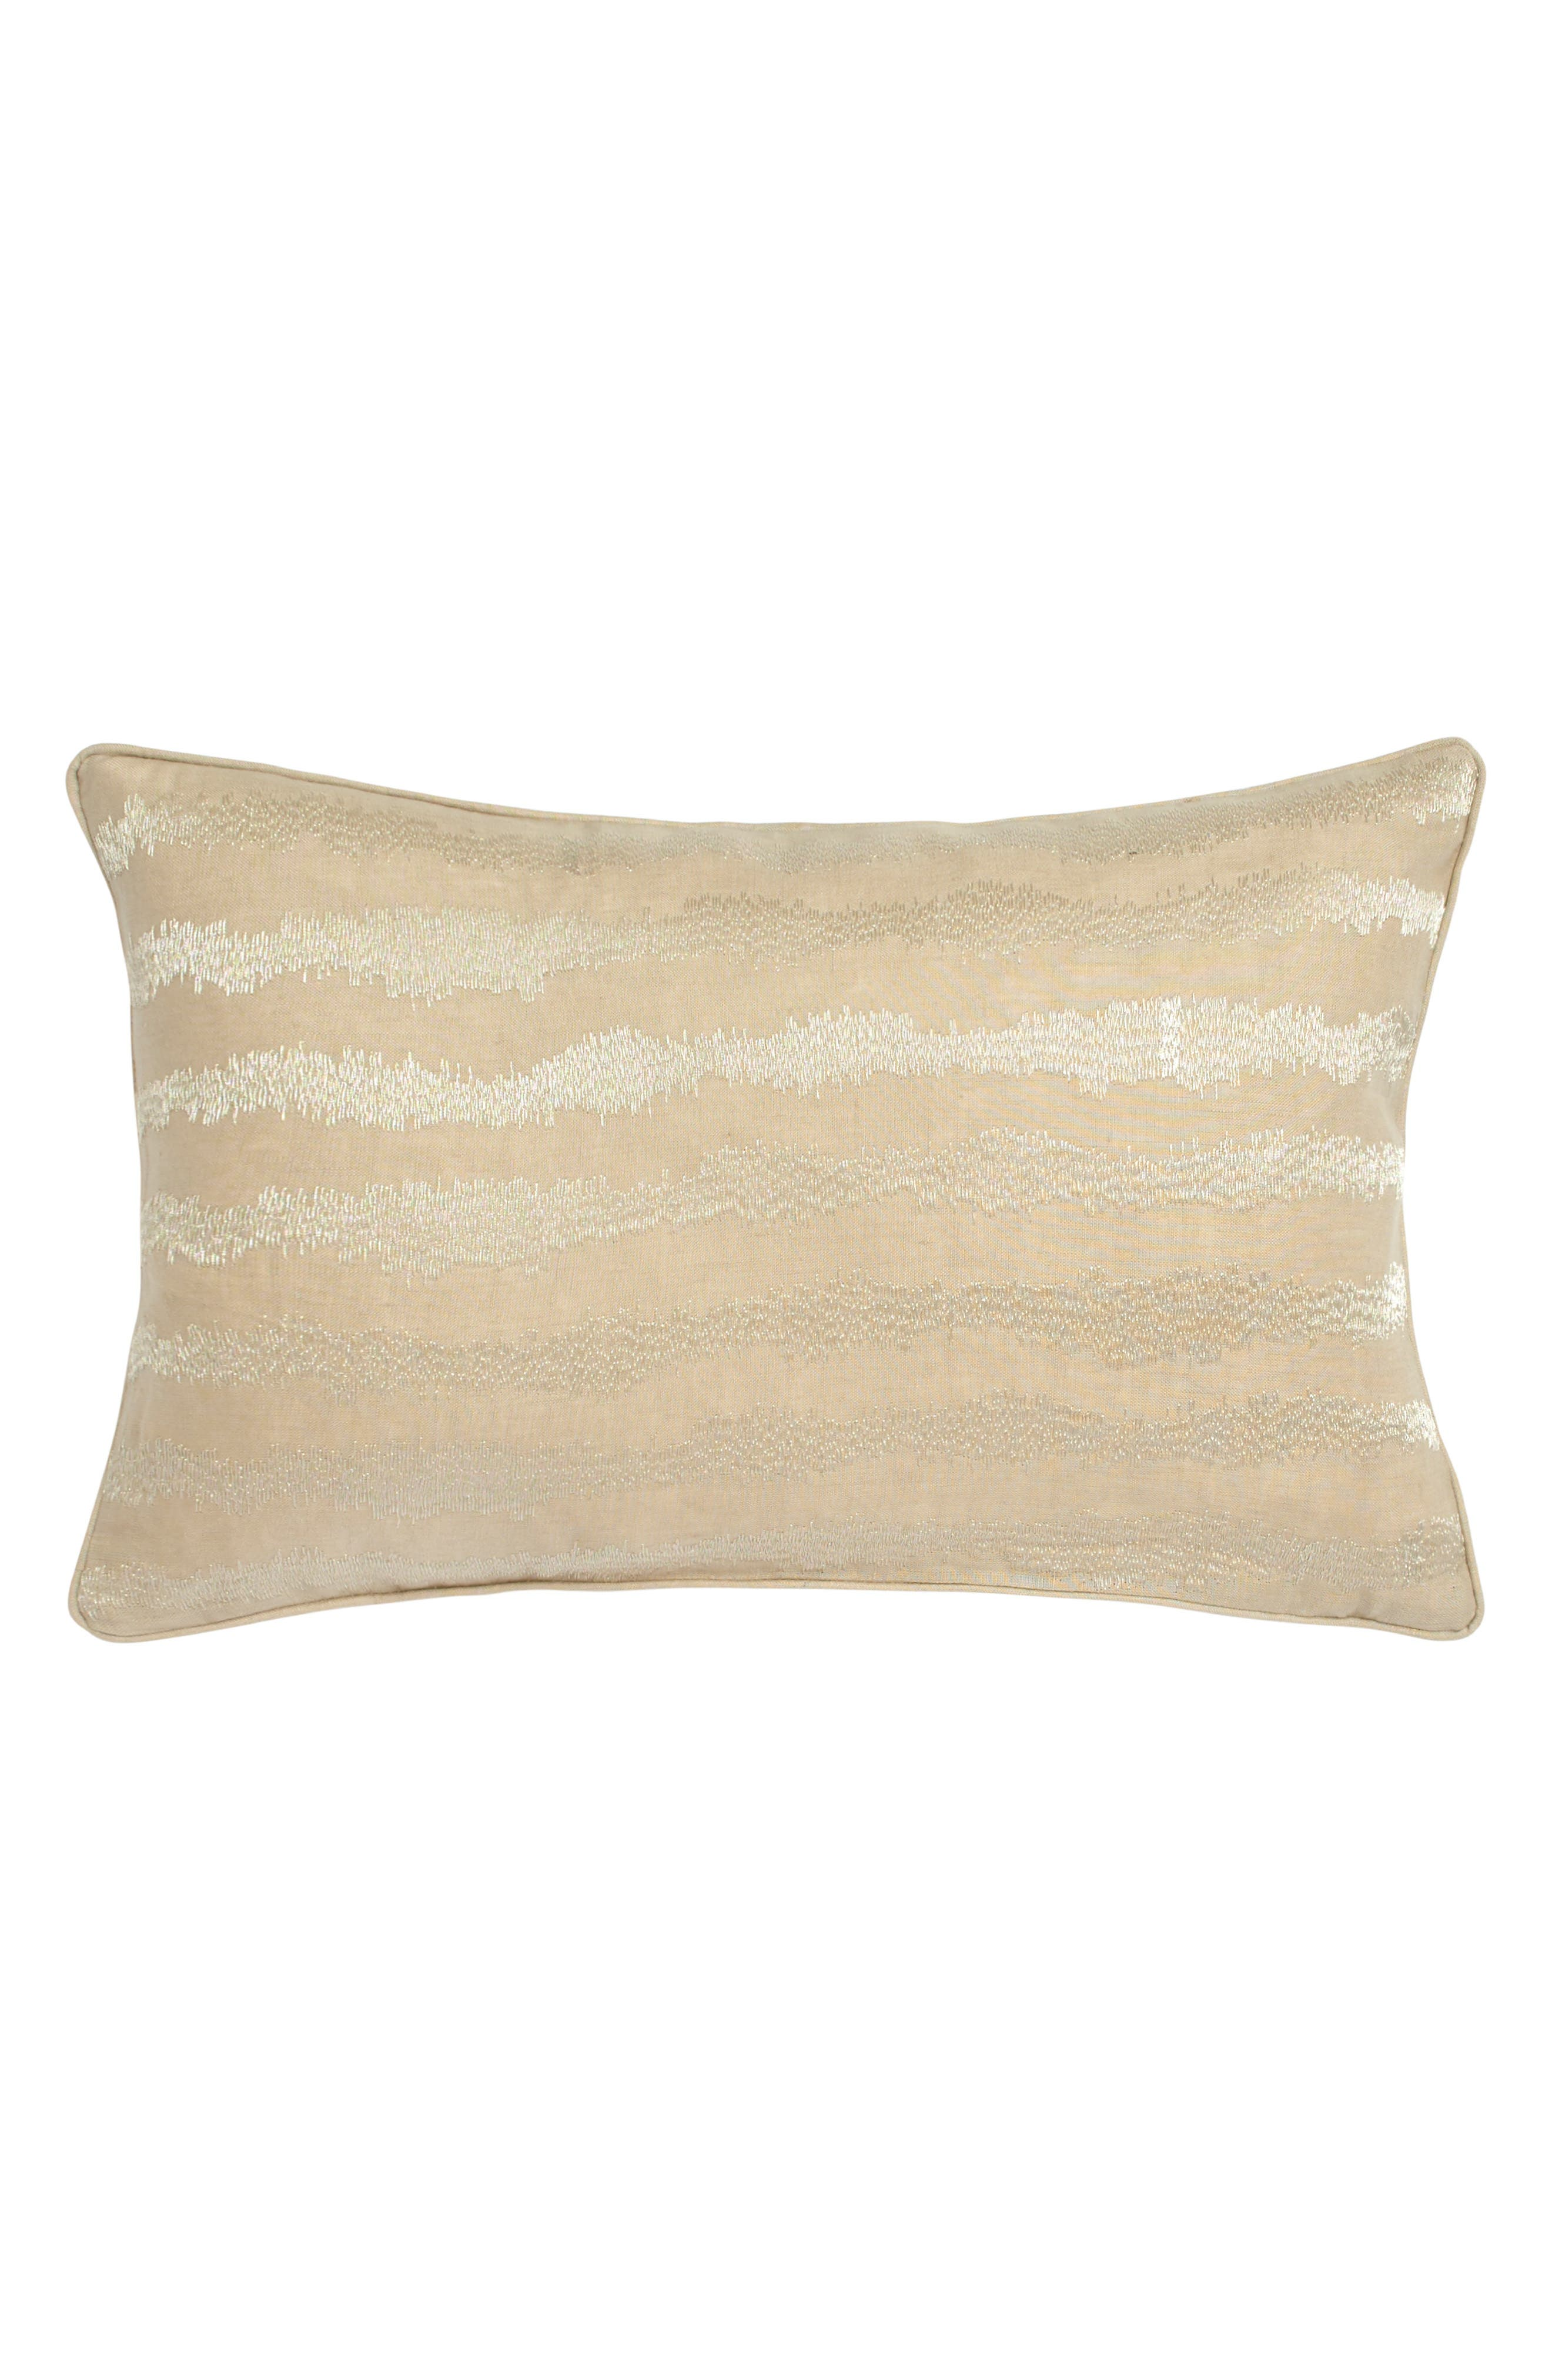 Harlequin Makrana Accent Pillow